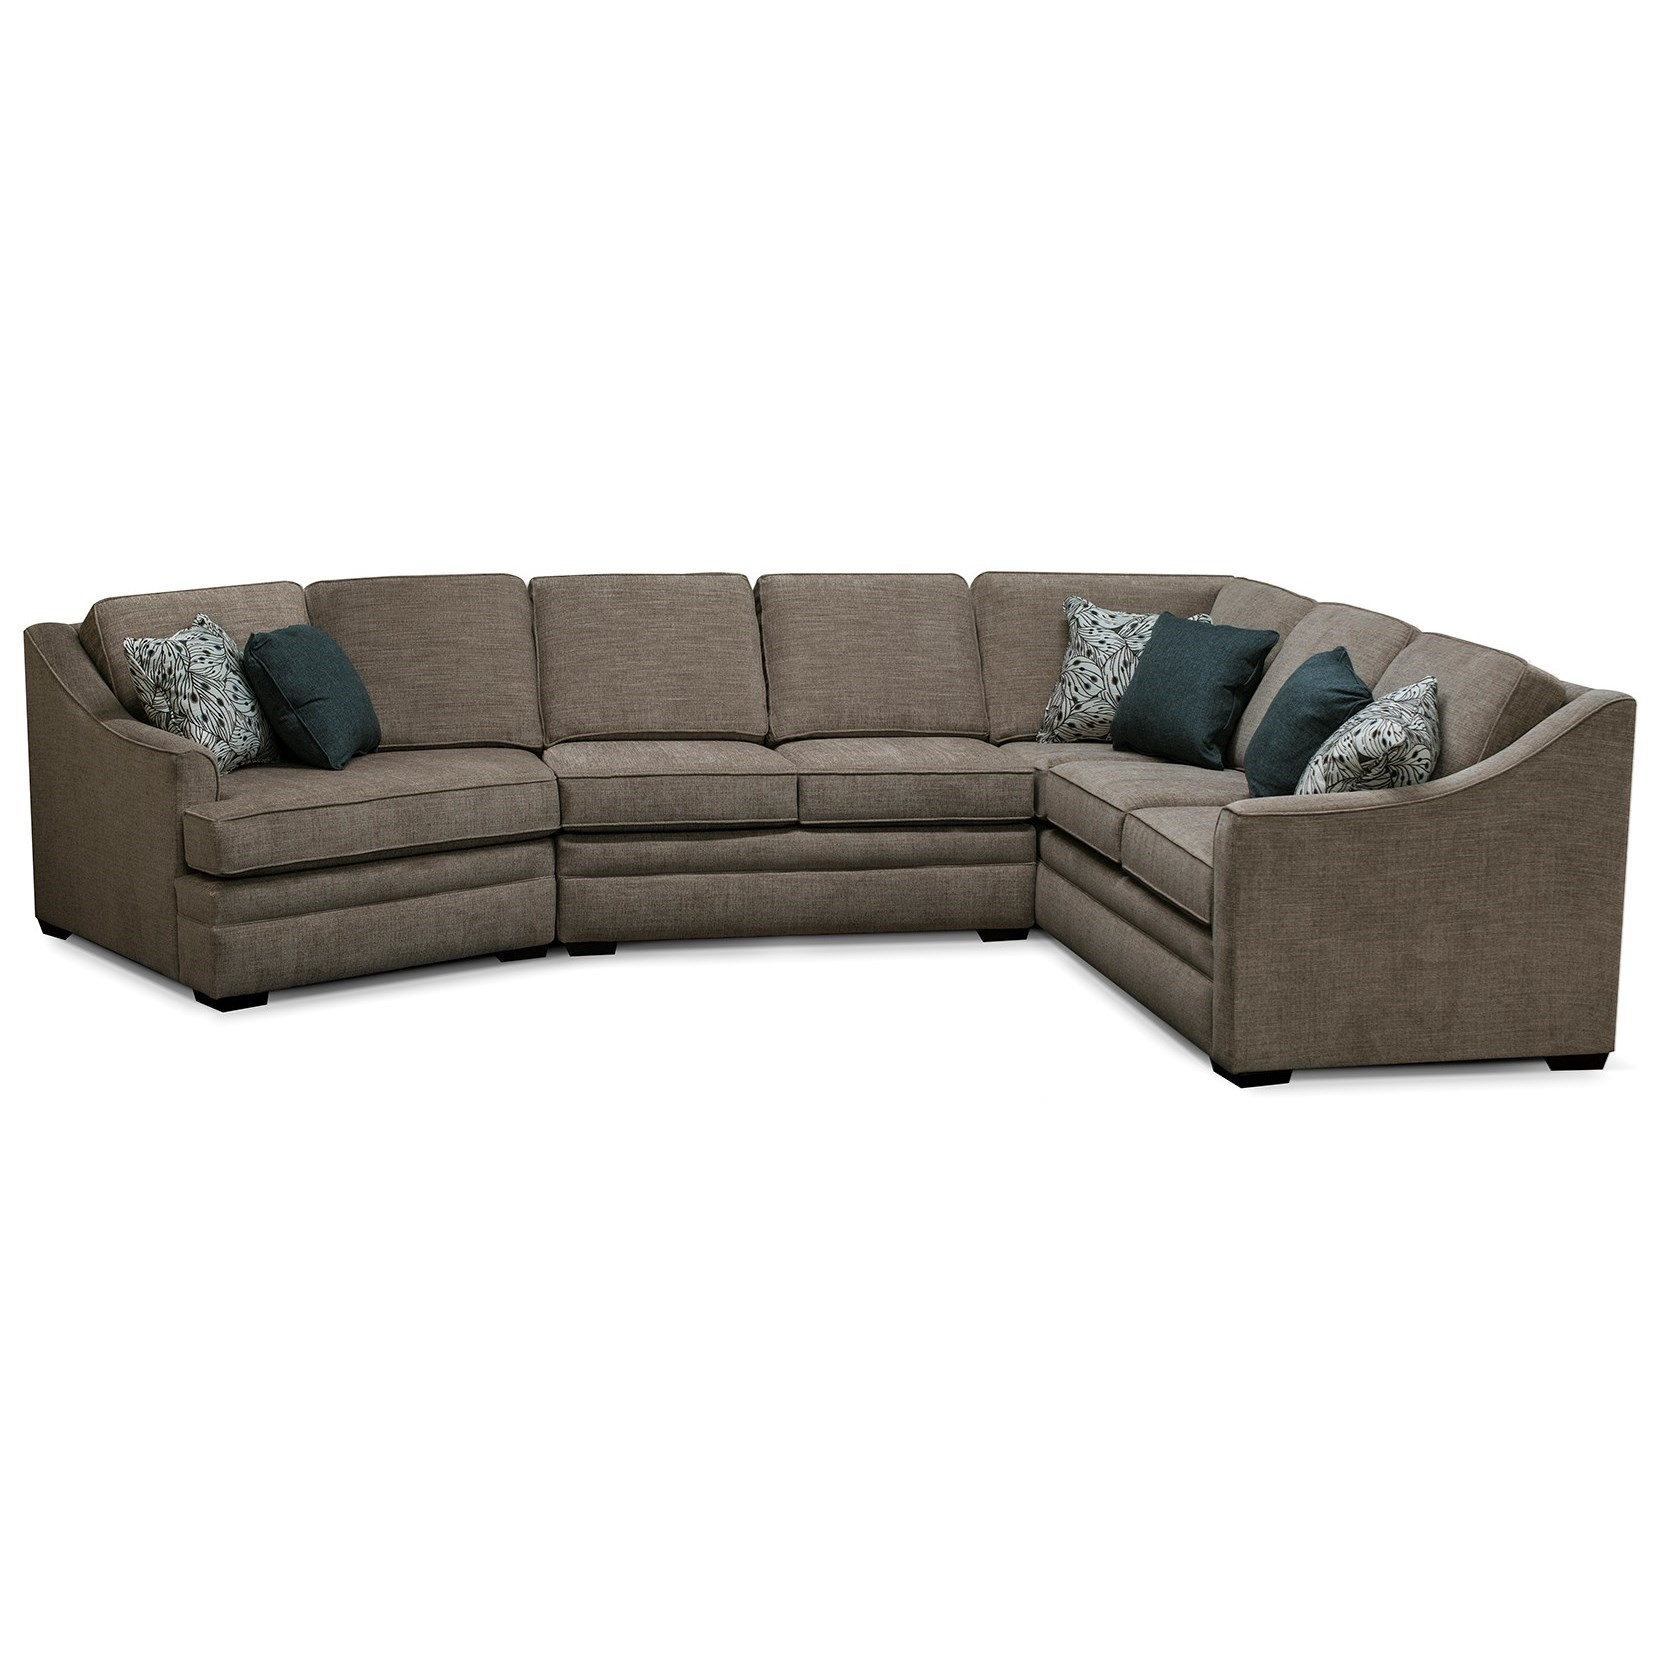 V4T0 3-Piece Sectional by Alexvale at Becker Furniture